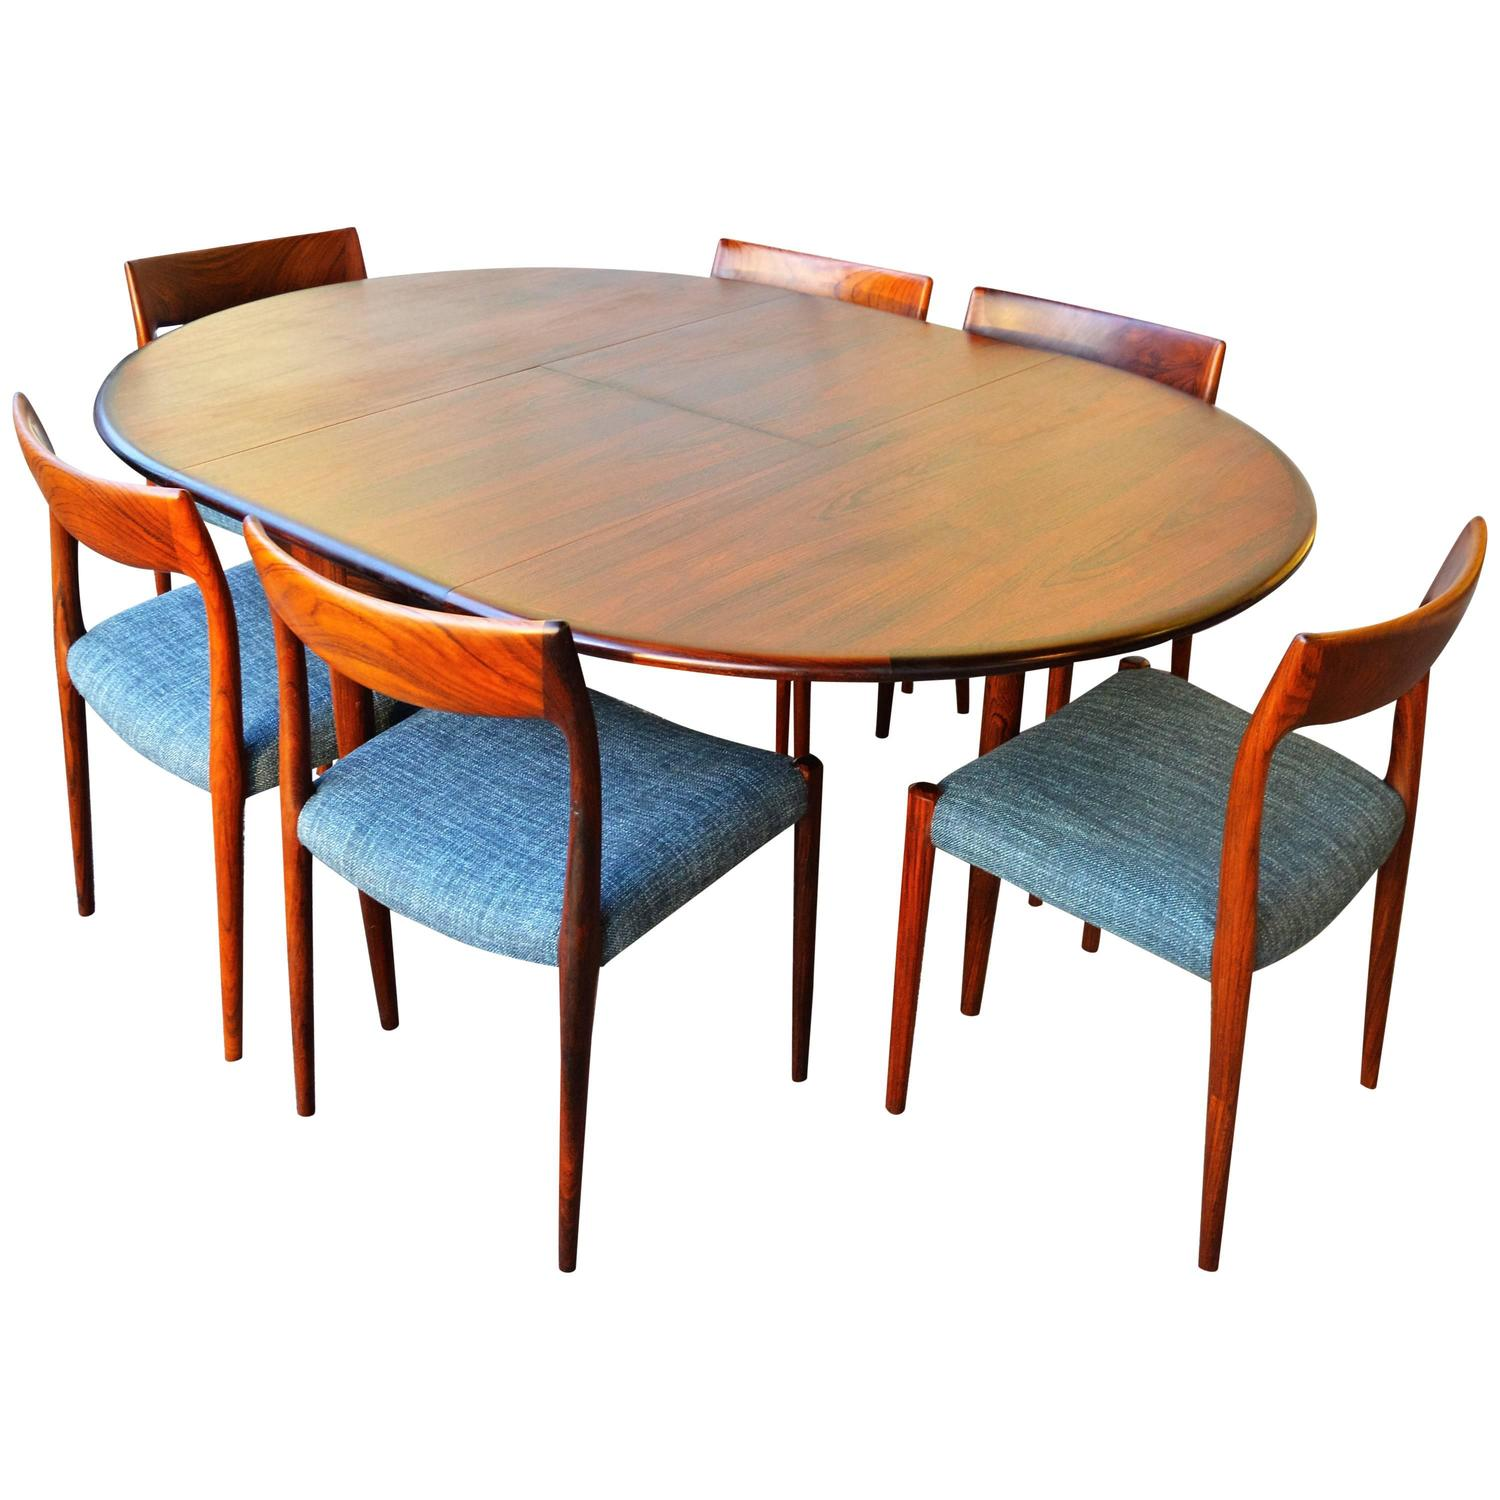 round dining table for 6 chairs rattan chair cushions covers unique restored n o moller rosewood one leaf